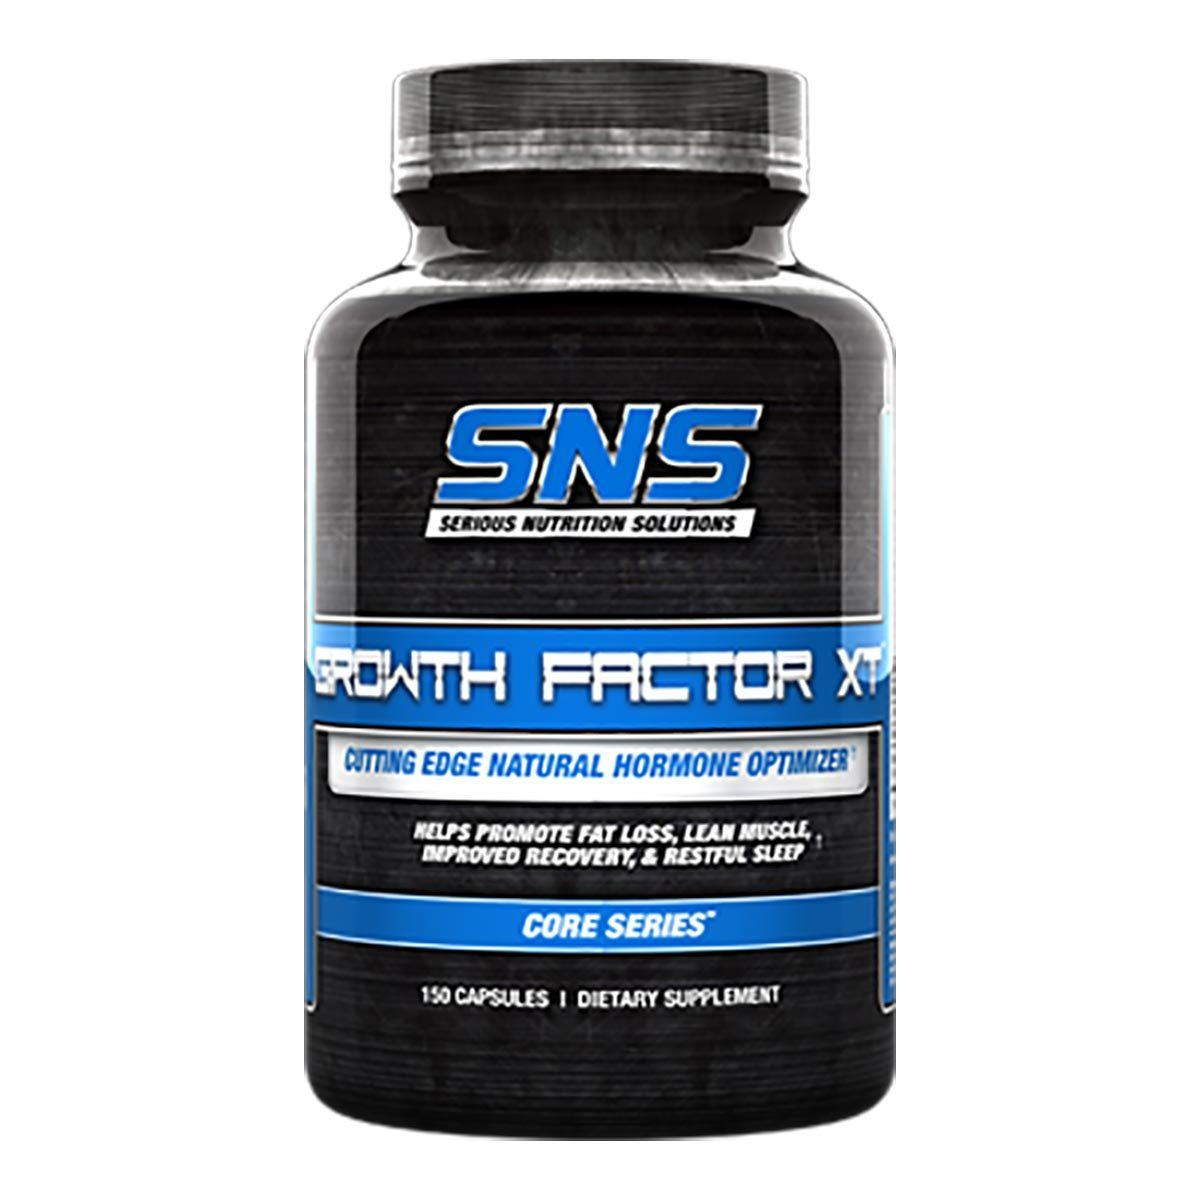 Serious Nutrition Solutions Growth Factor XT 150 Caps Sport Performance / Recovery Serious Nutrition Solutions  (1059043344427)